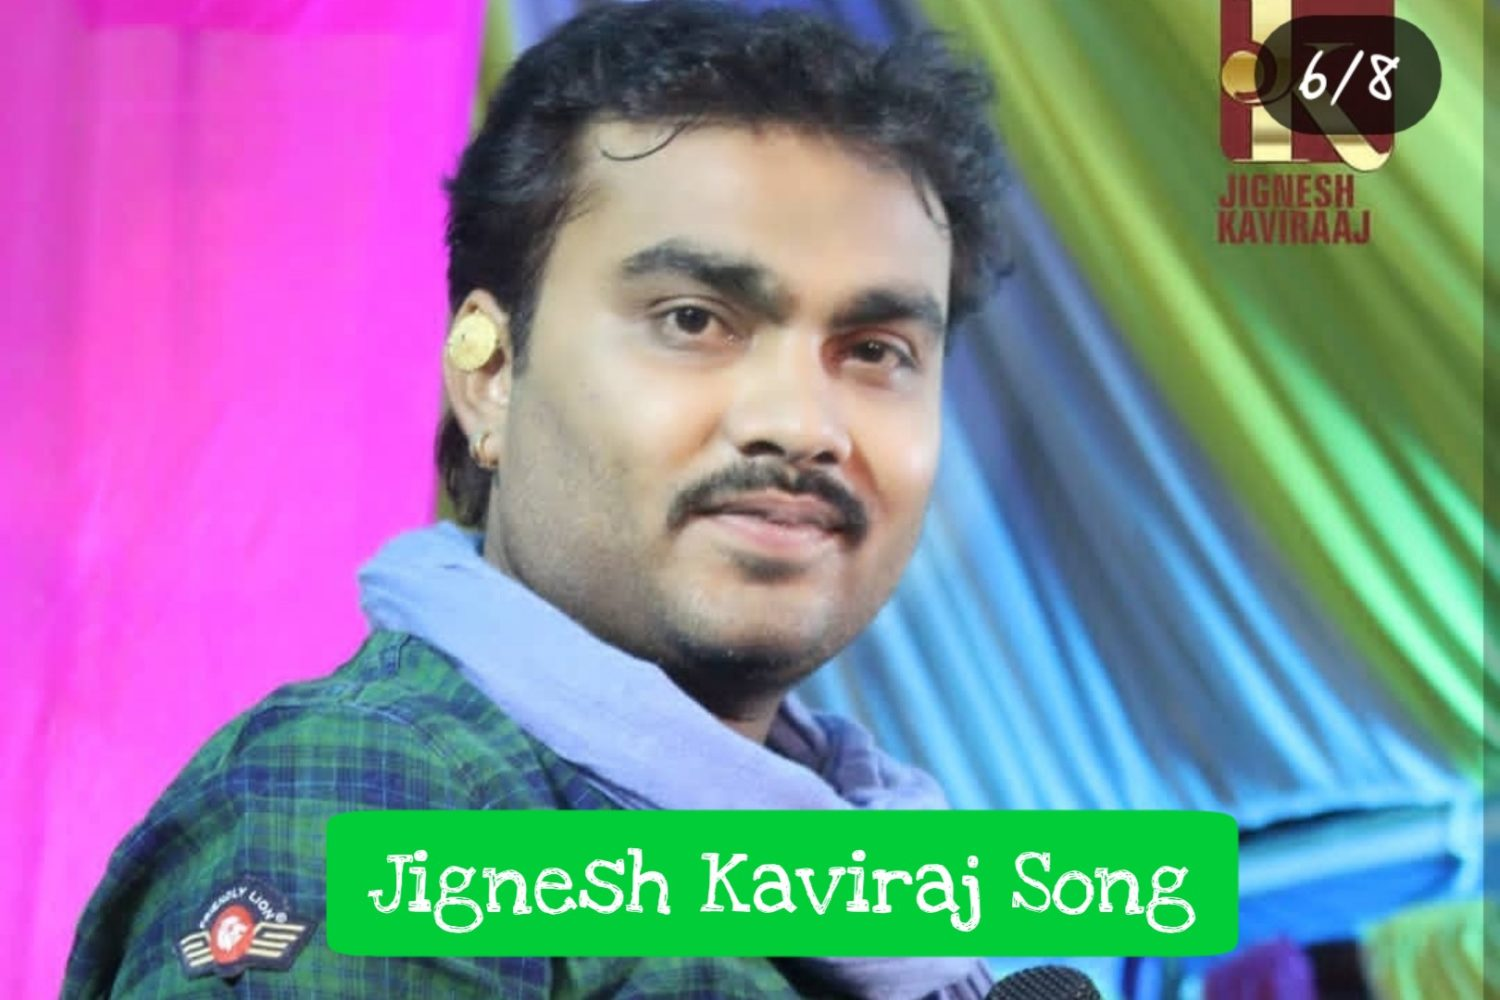 jignesh kaviraj new ringtone